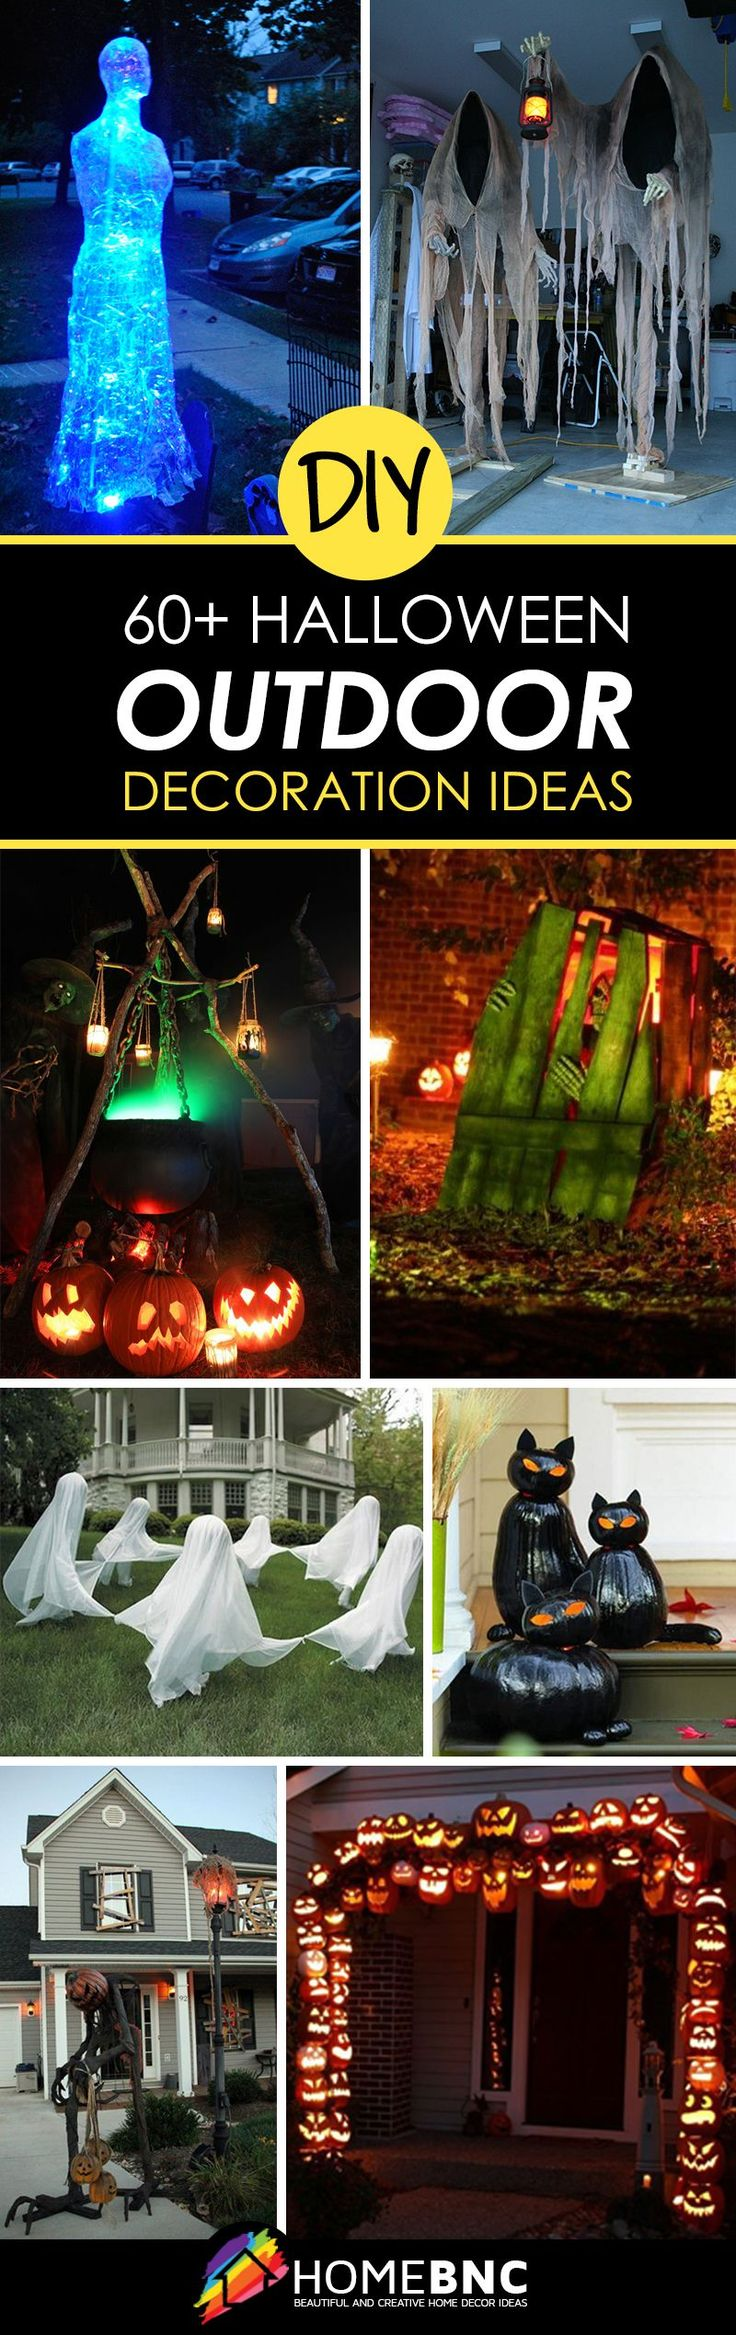 9 best Halloween images on Pinterest